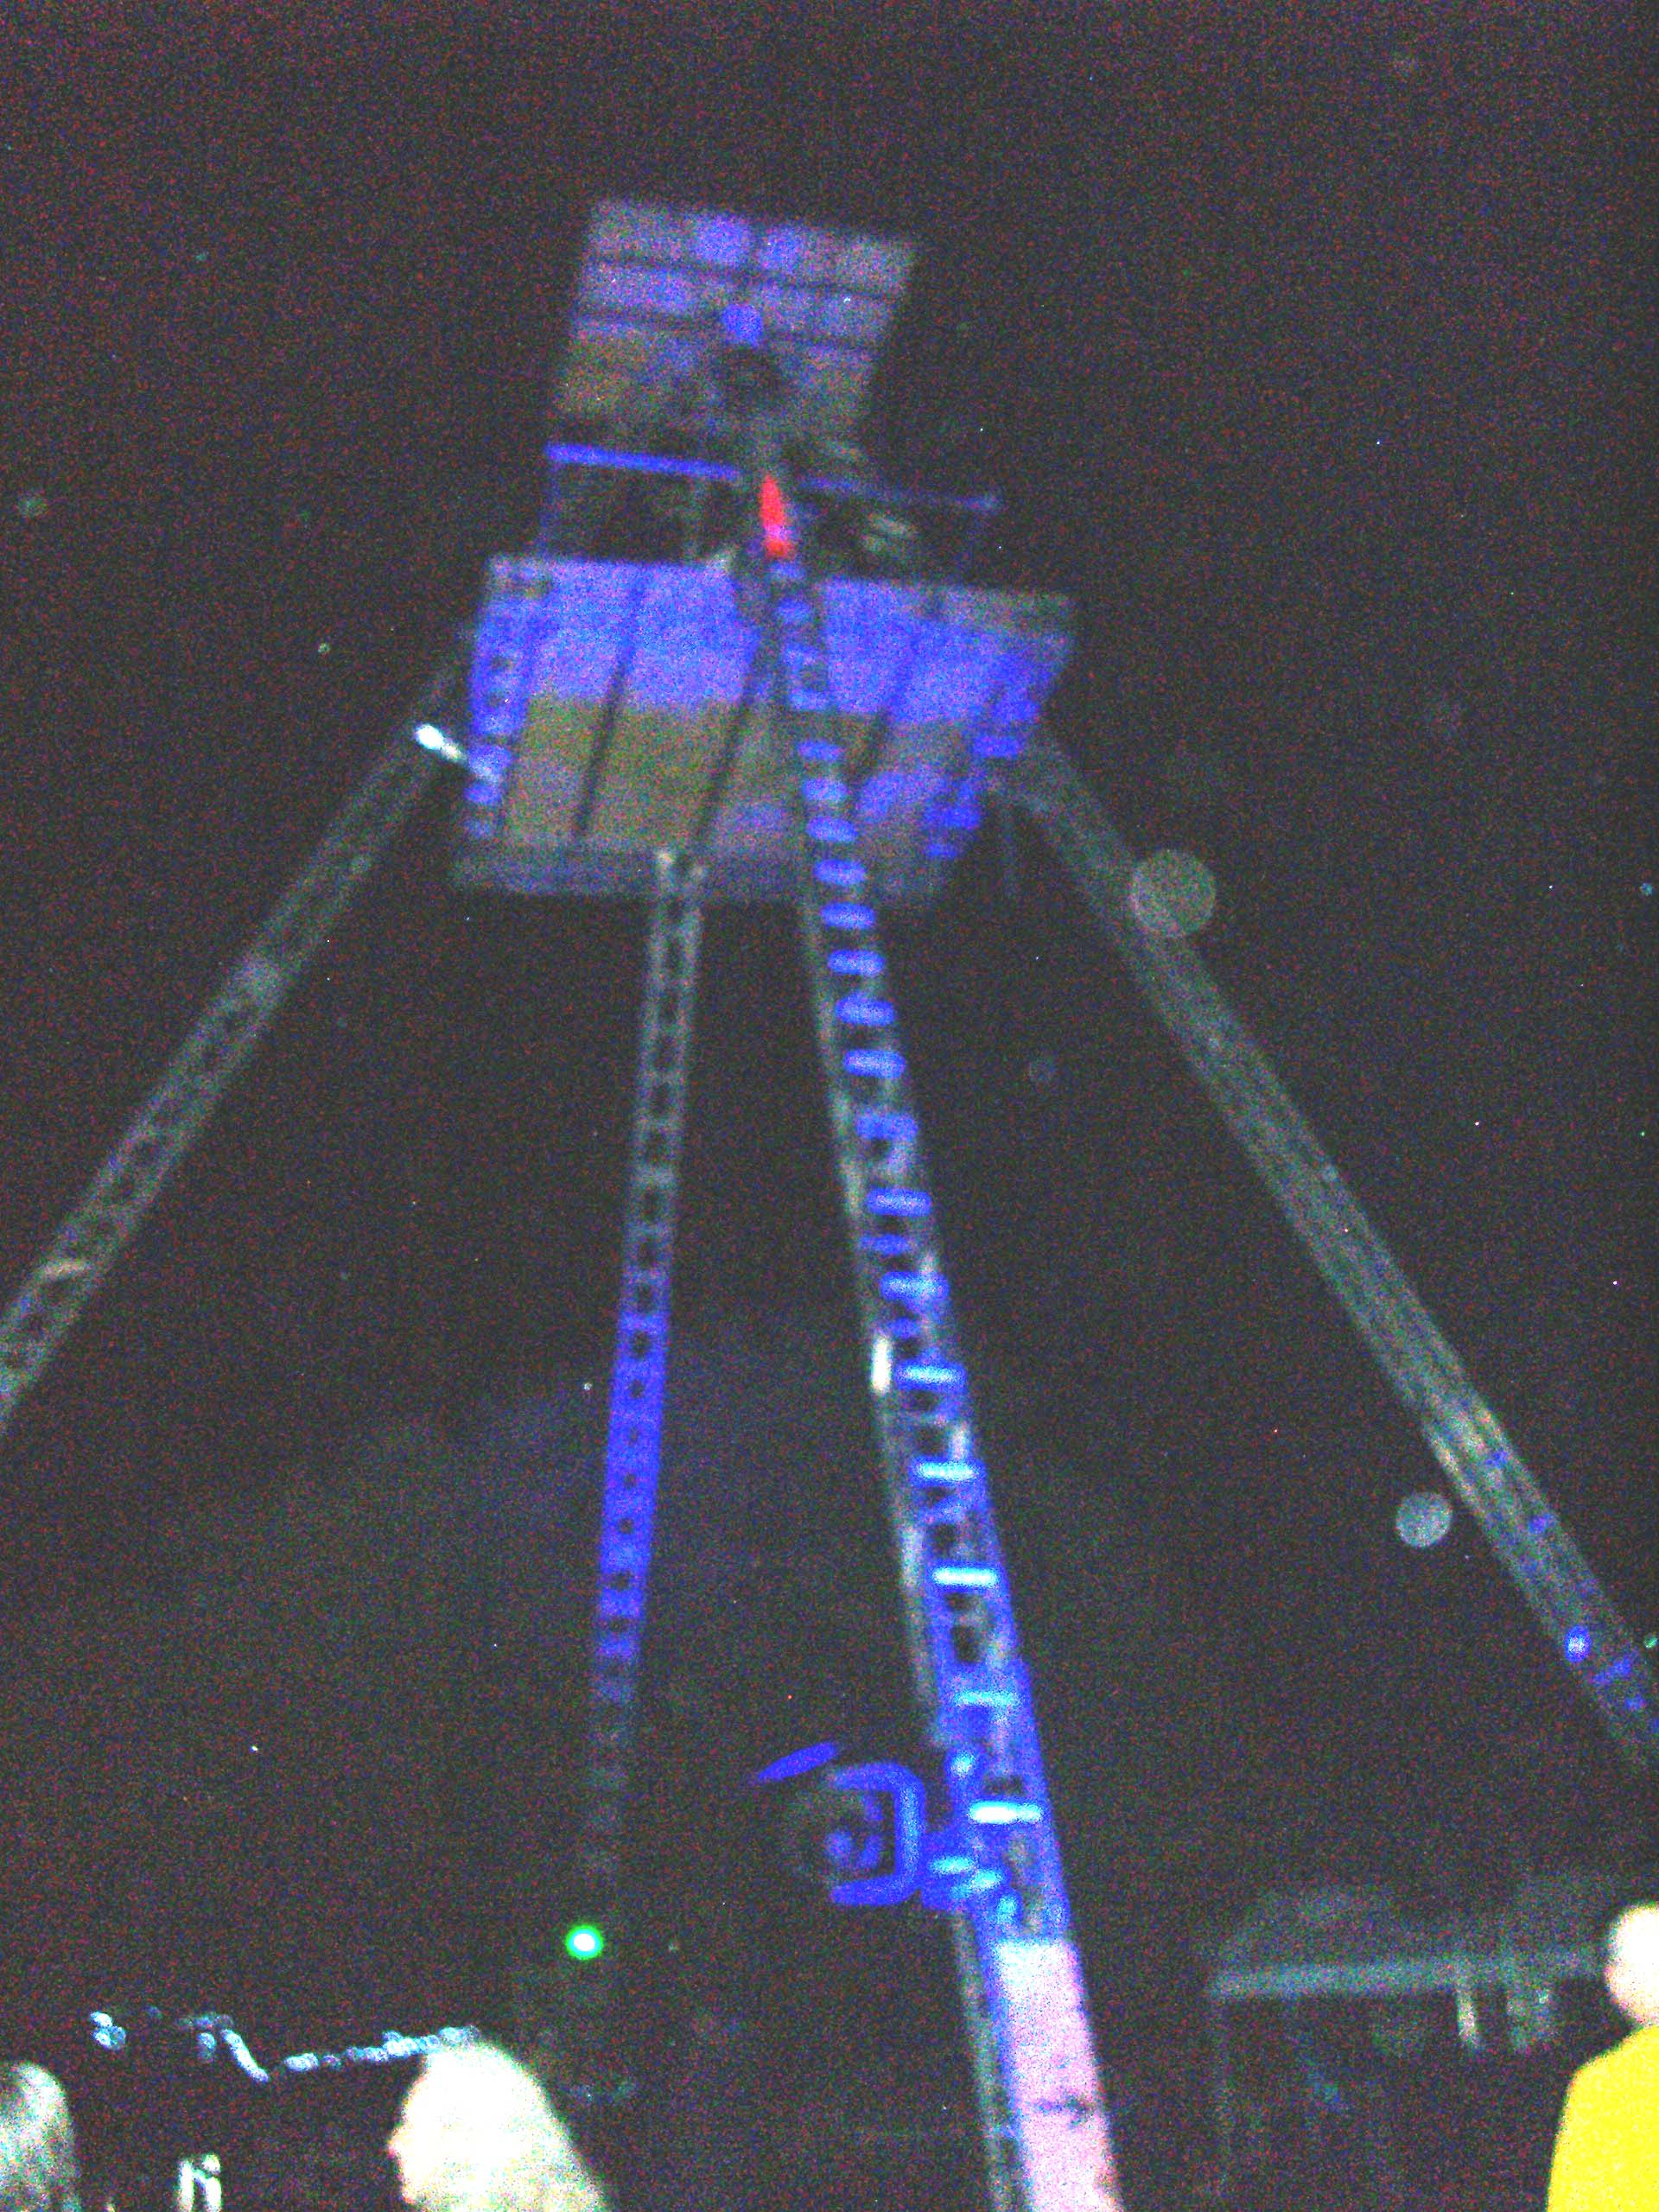 This pyramid must have been the tallest structure at Flipside 2007